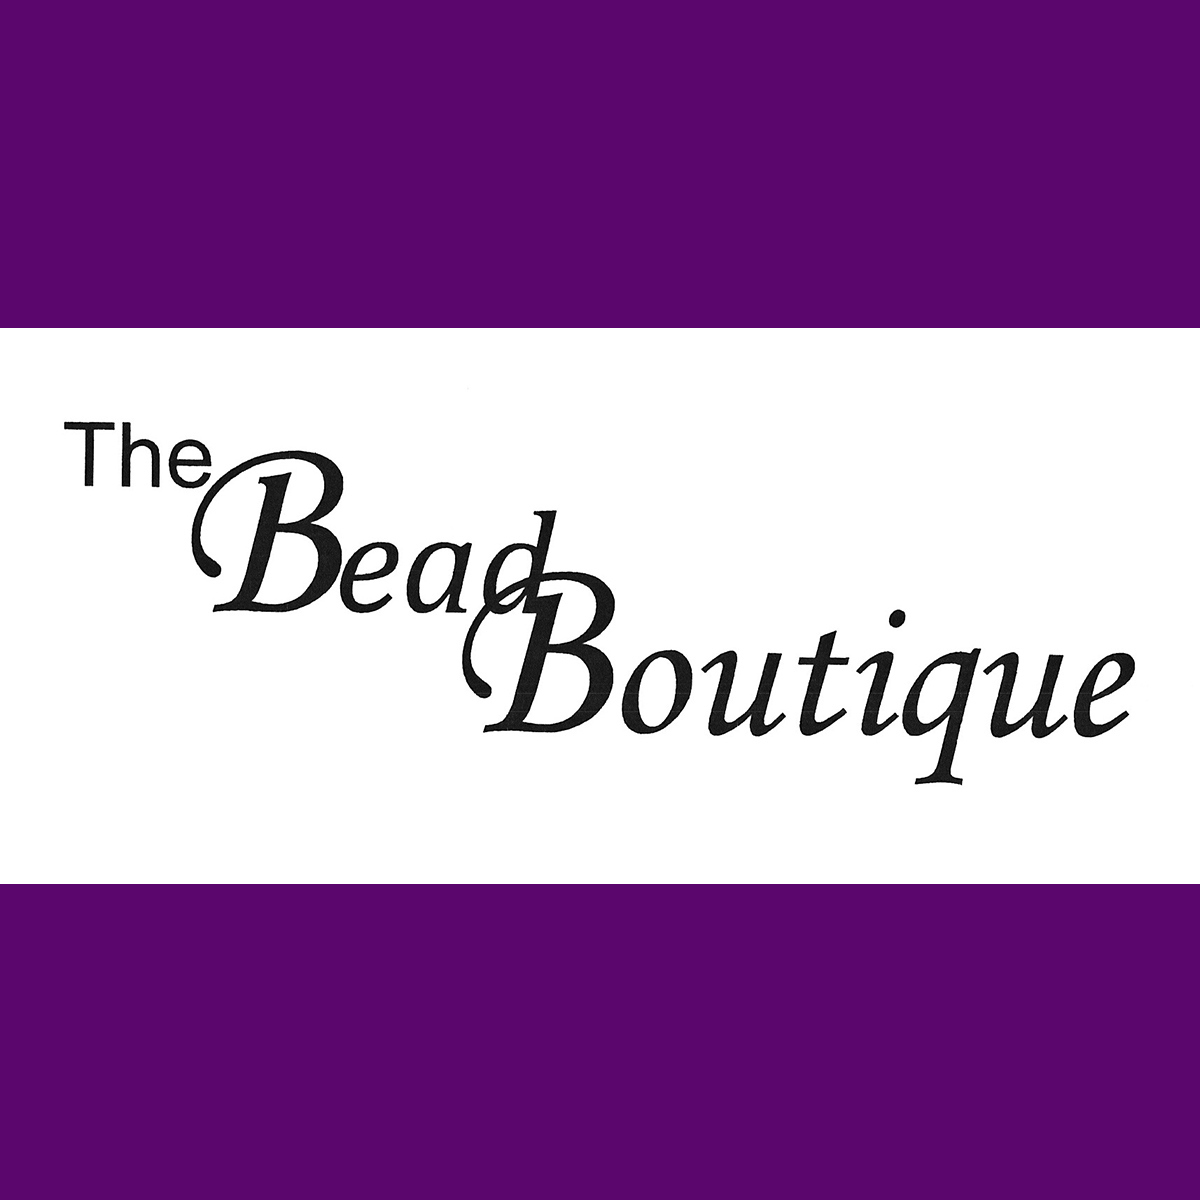 The Bead Boutique Inc.